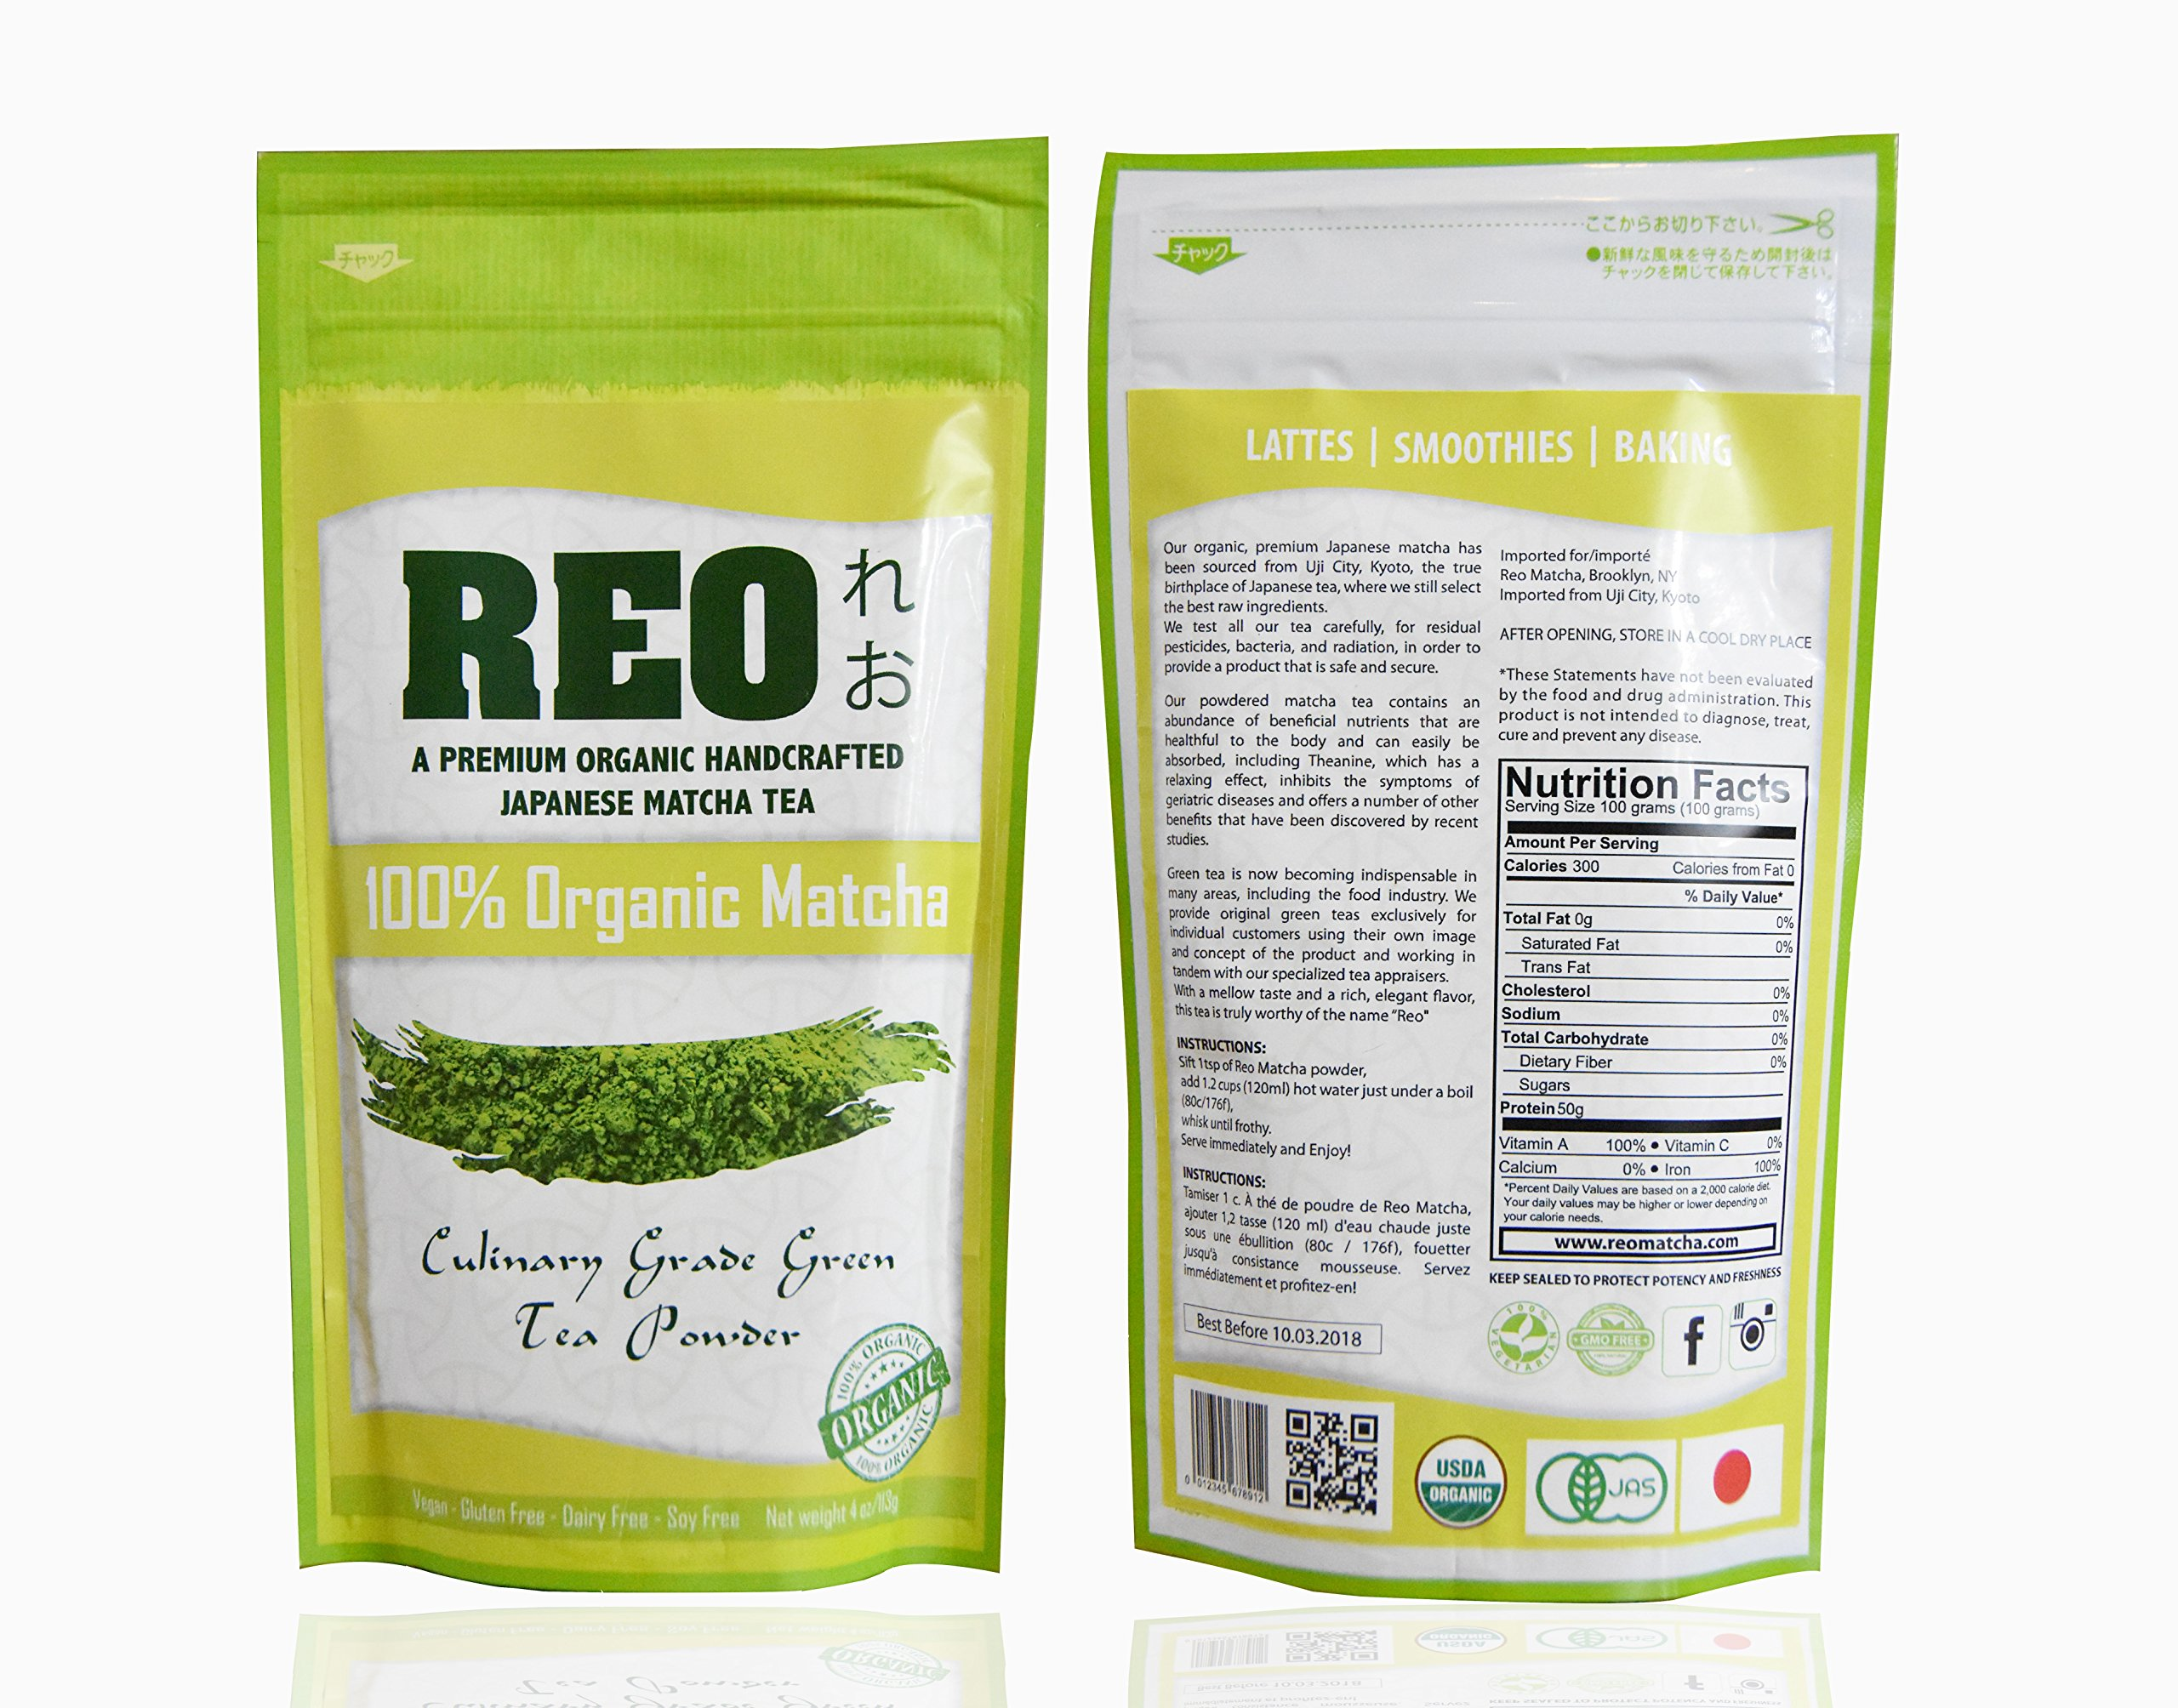 REO - Matcha Green Tea Powder - 100% Organic, USDA, Authentic Japanese Culinary Grade - For Smoothies, Baking - Natural Supplement - Weight Loss, Metabolism Boost, Increase Energy 4oz (113 grams)